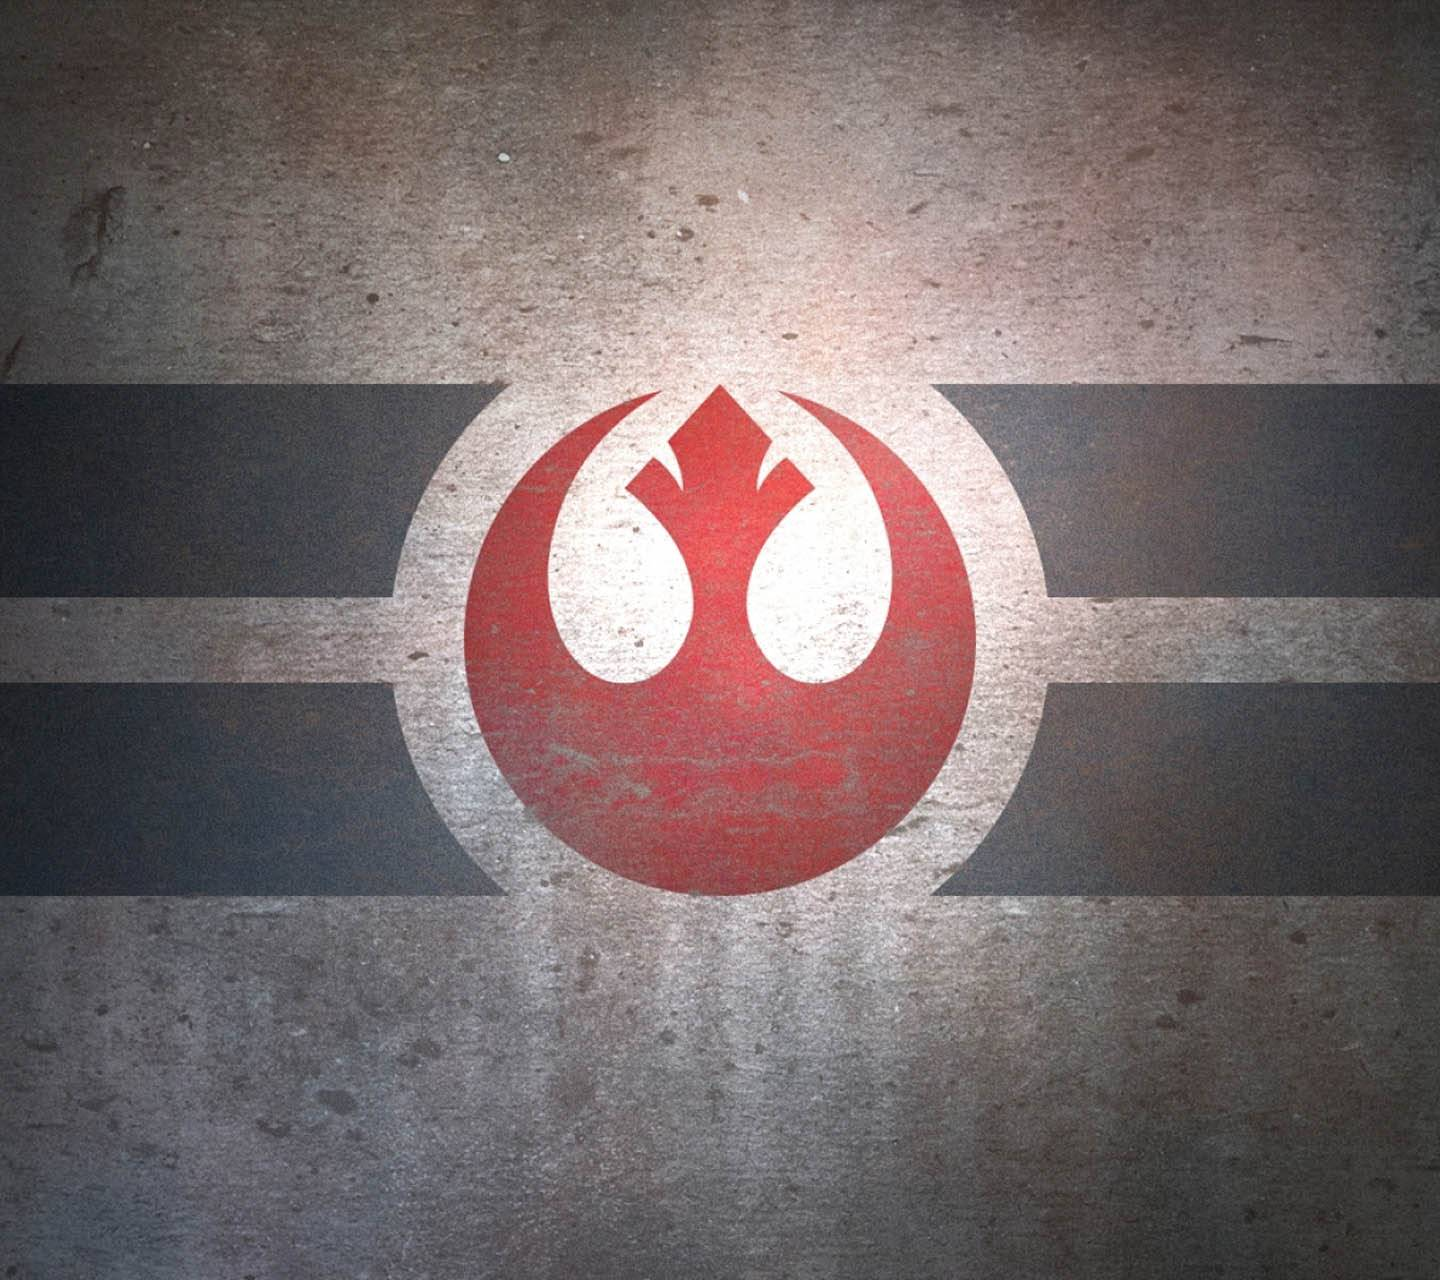 Rebel Alliance Wallpaper By Jstatetiger A9 Free On Zedge